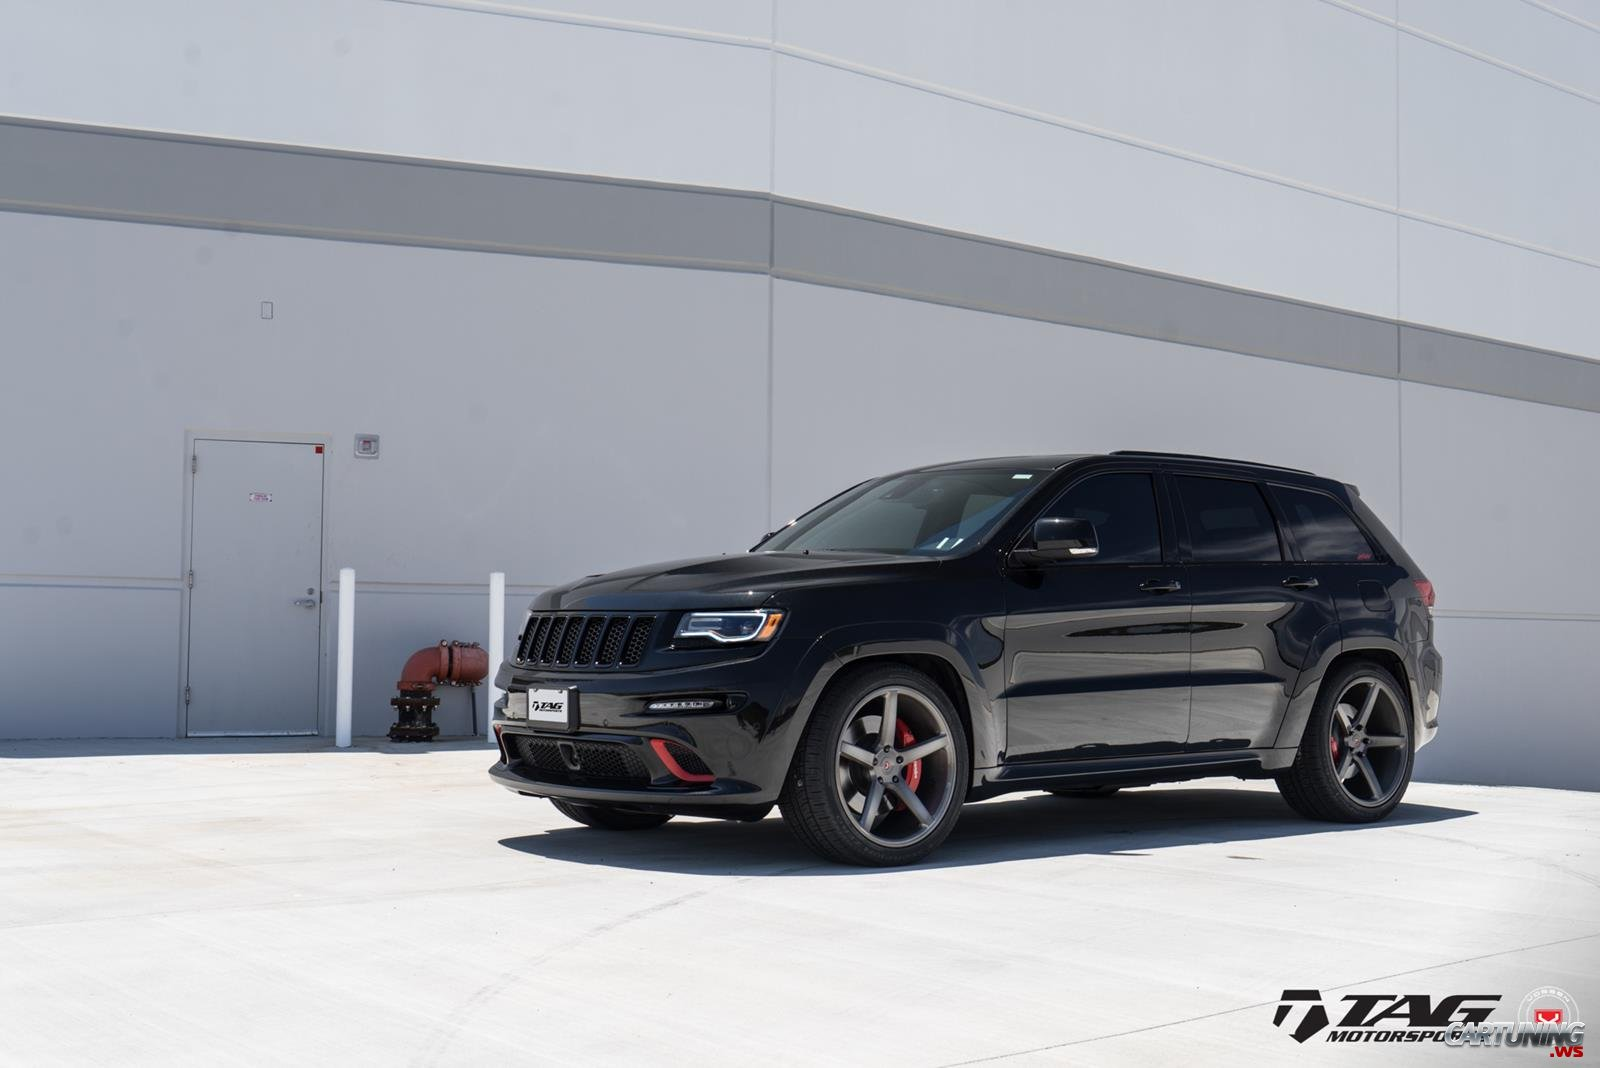 Jeep Srt 8 2017 >> Tuning Jeep Grand Cherokee SRT8 side